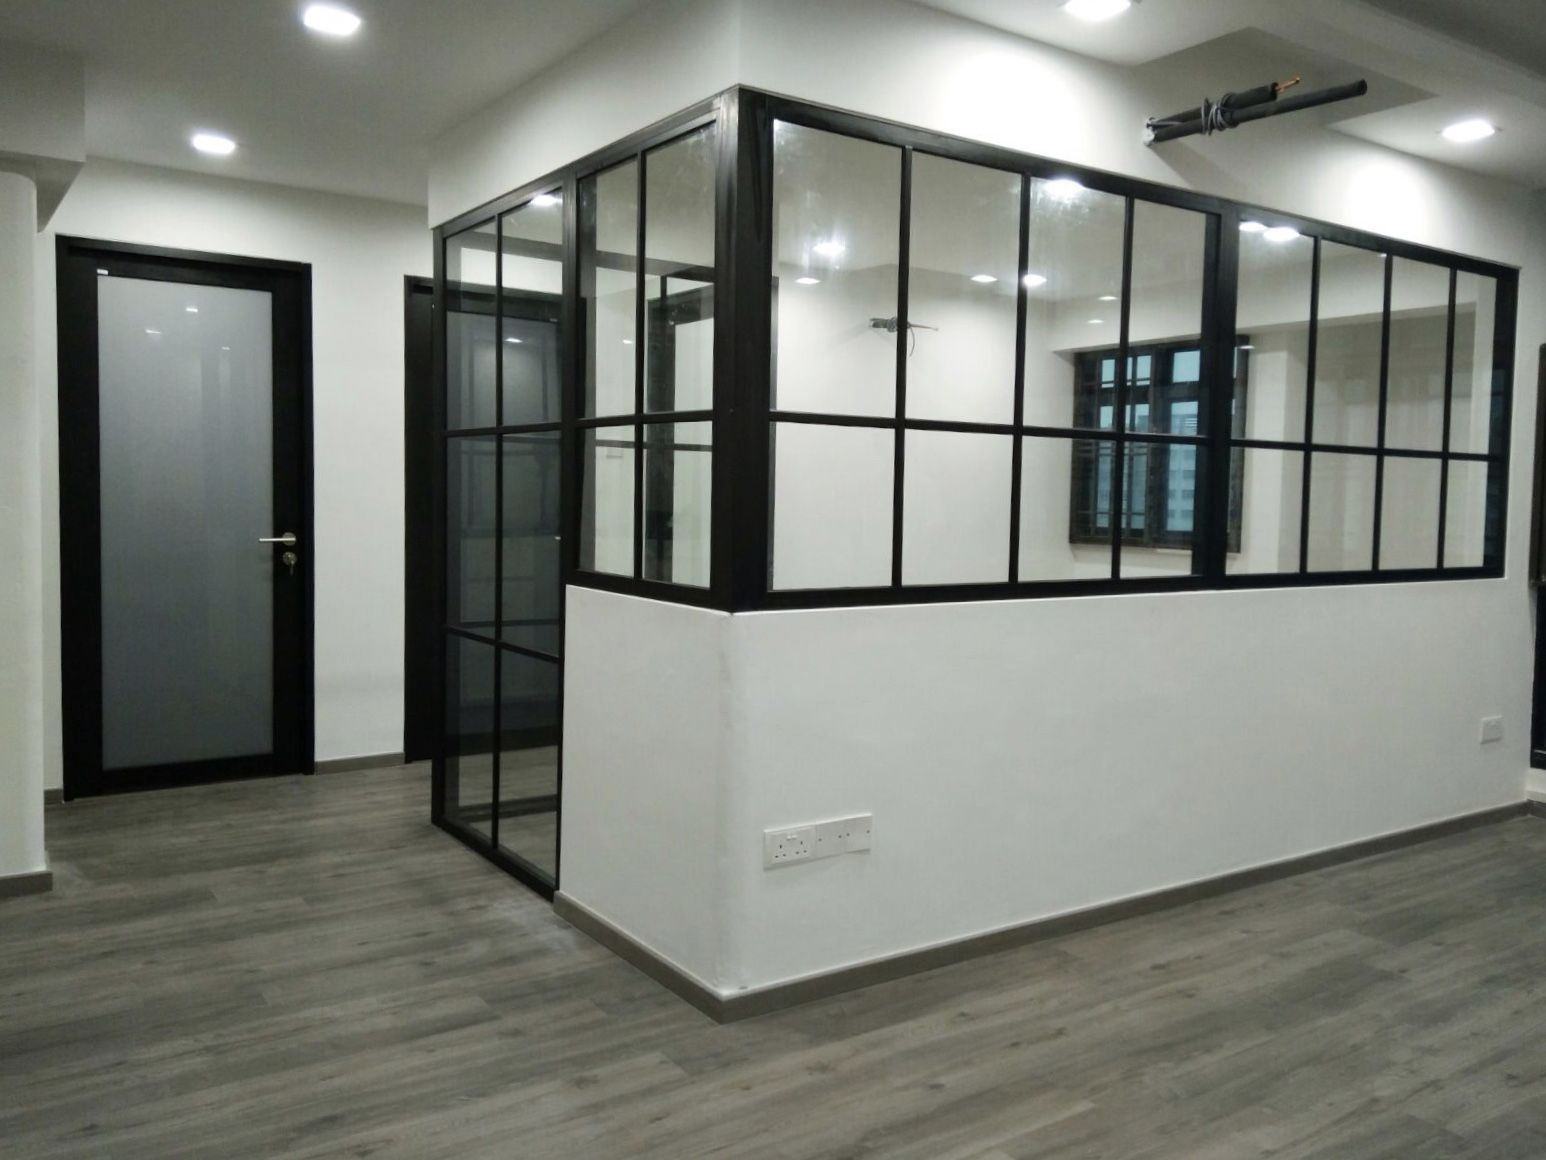 Our movi sliding room dividers series allow you to partition space